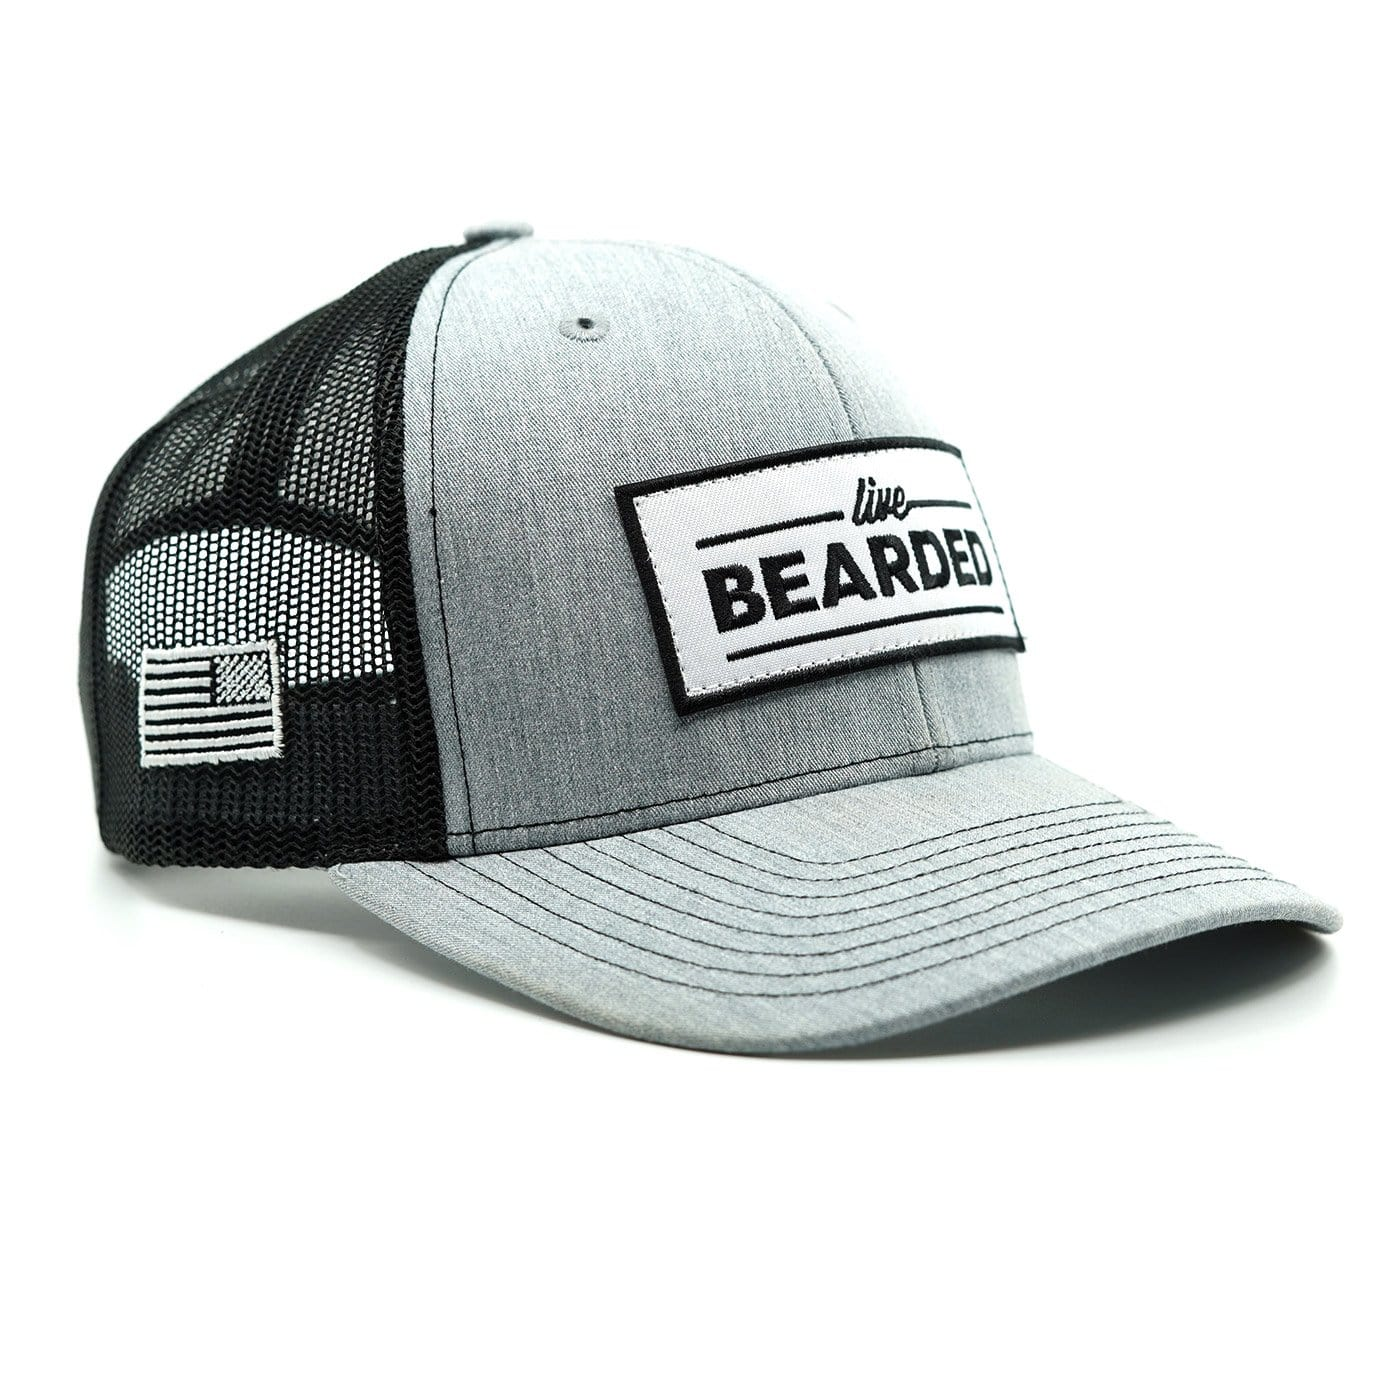 Heather Grey with White Patch Trucker Hat